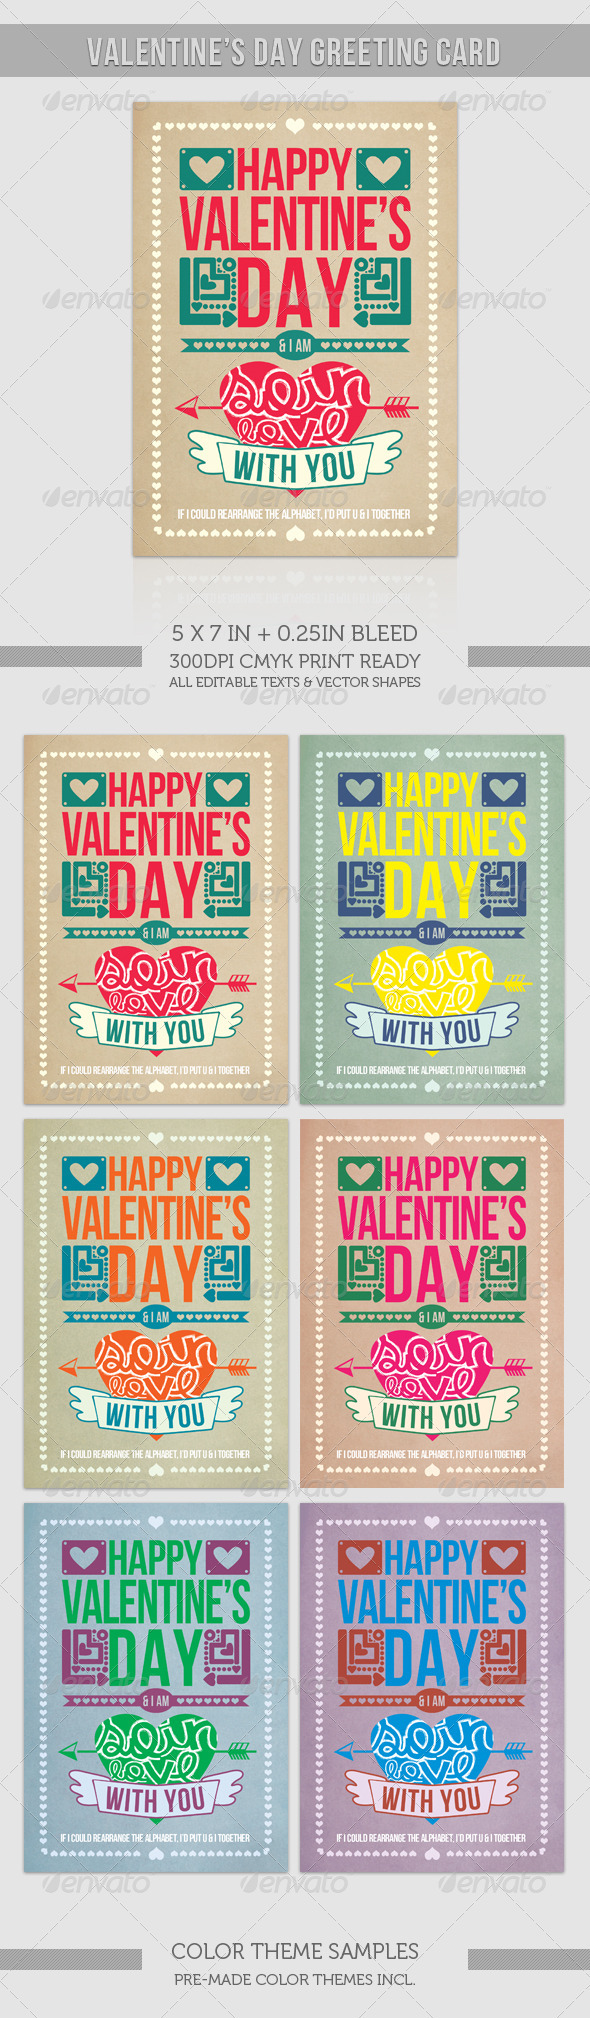 Valentine Card - So in Love With You - Holiday Greeting Cards